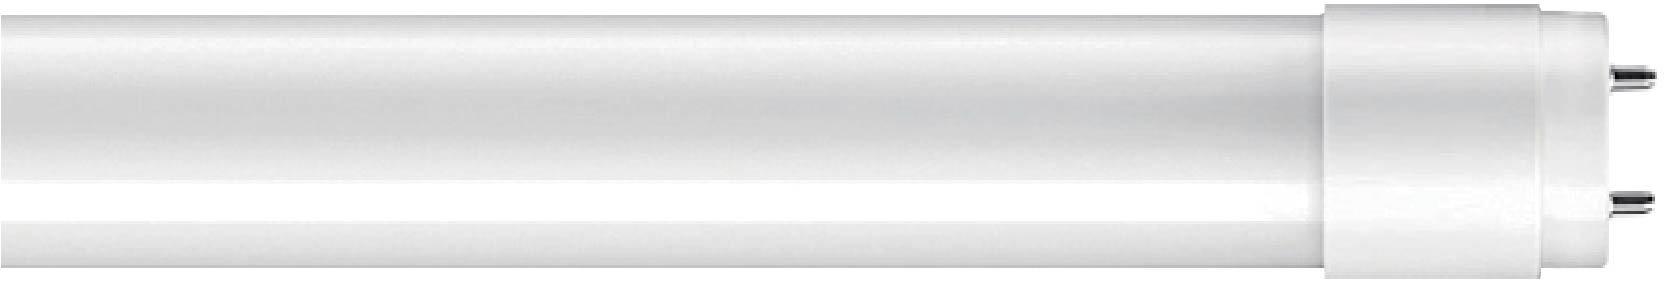 Goodlite G-83409 8W LED T8, 24'' T12 & T8 Fluorescent Replacement. Universal Direct OR Bypass, One or two side power, Frosted, Daylight 6500k